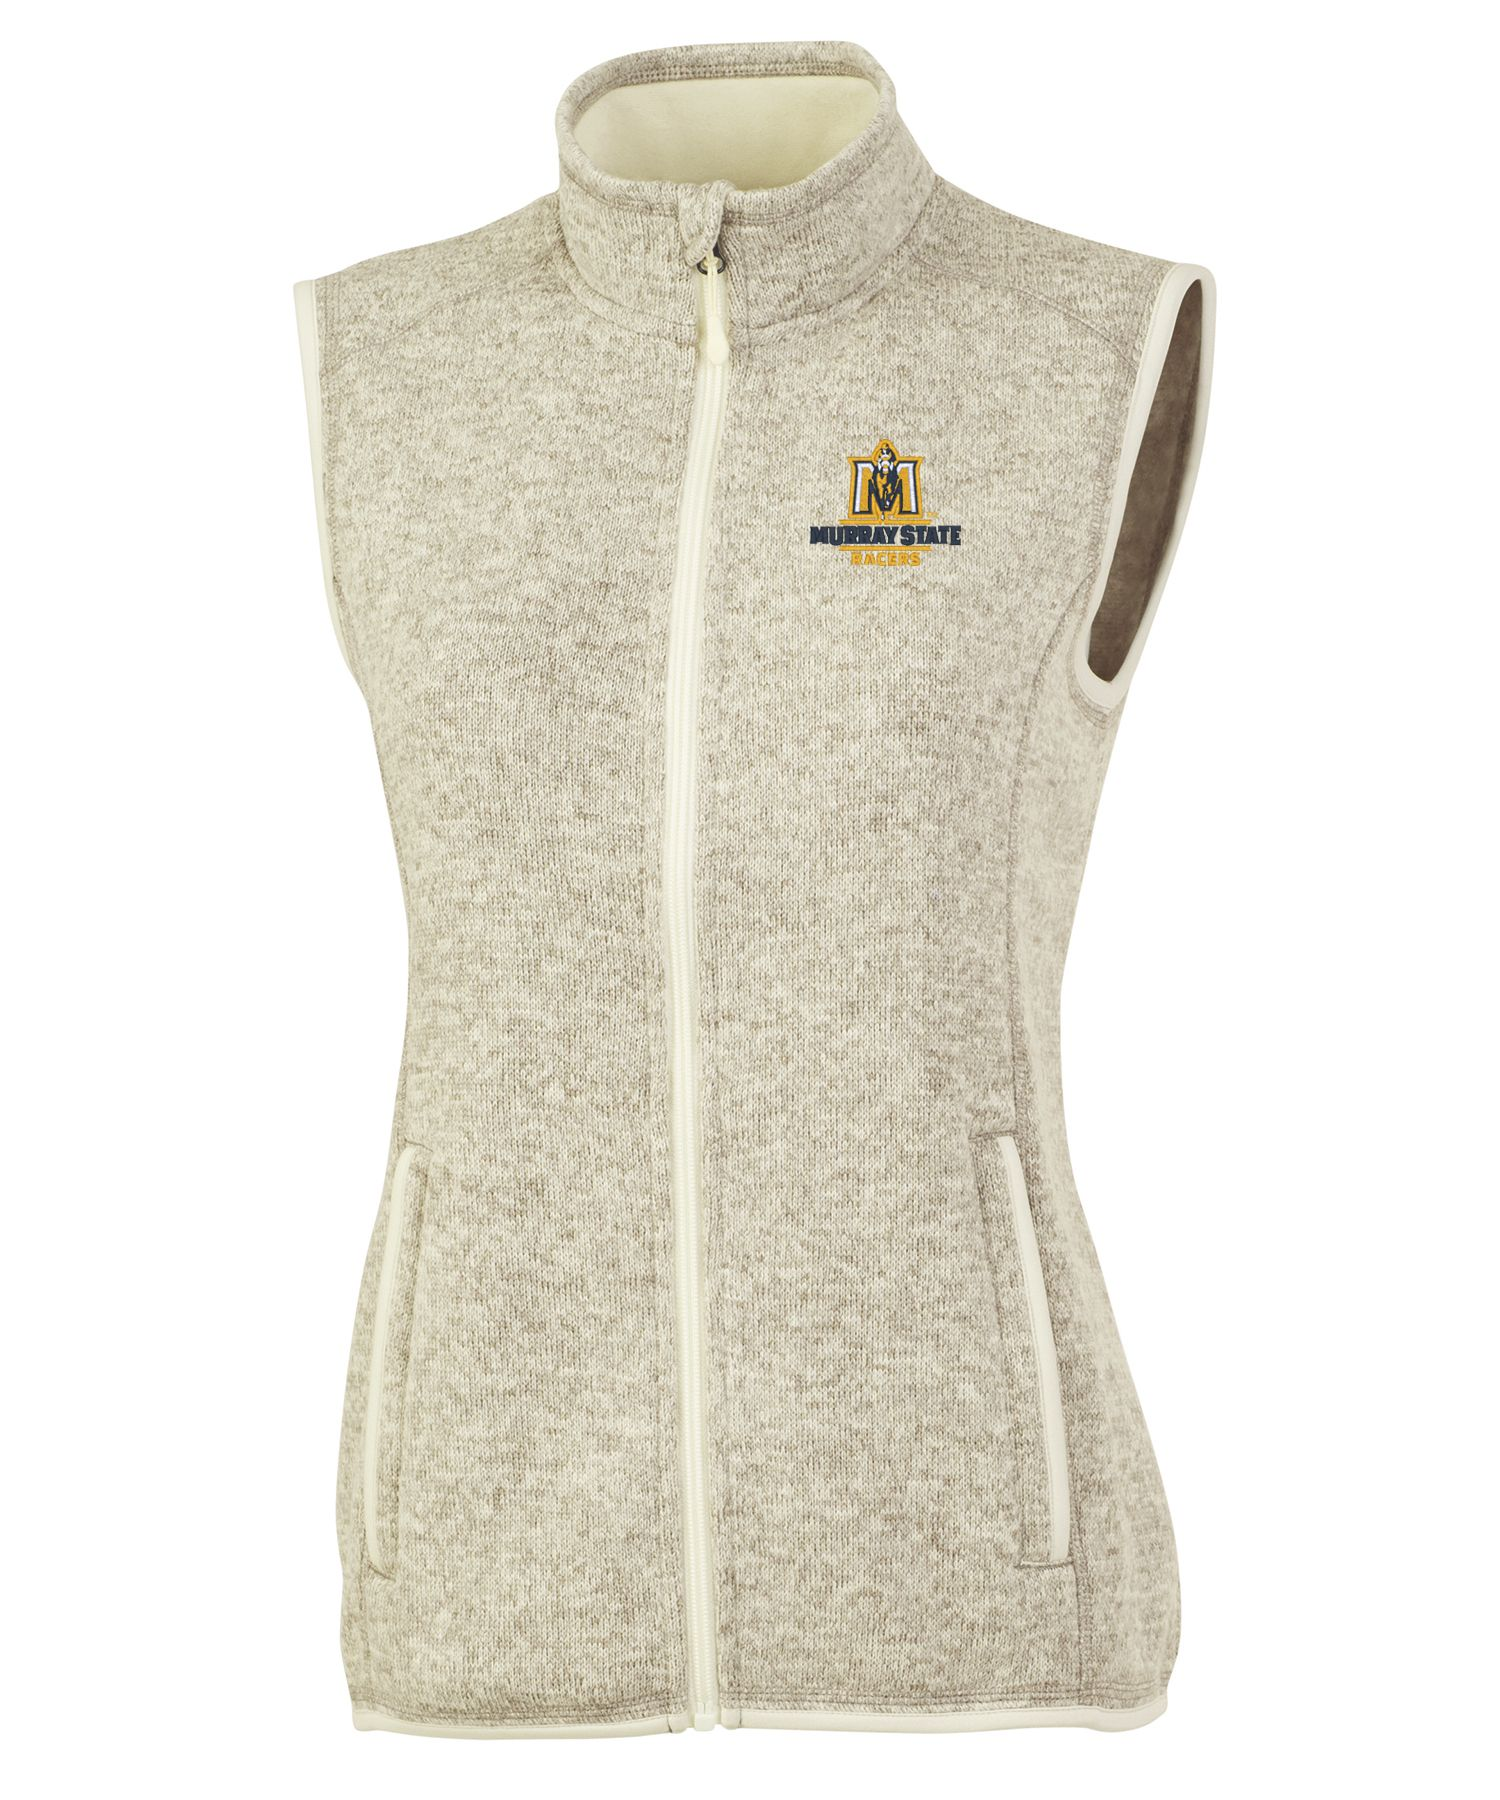 Charles River Ladies Oatmeal Vest $49.99 | Racer Swag | Pinterest ...